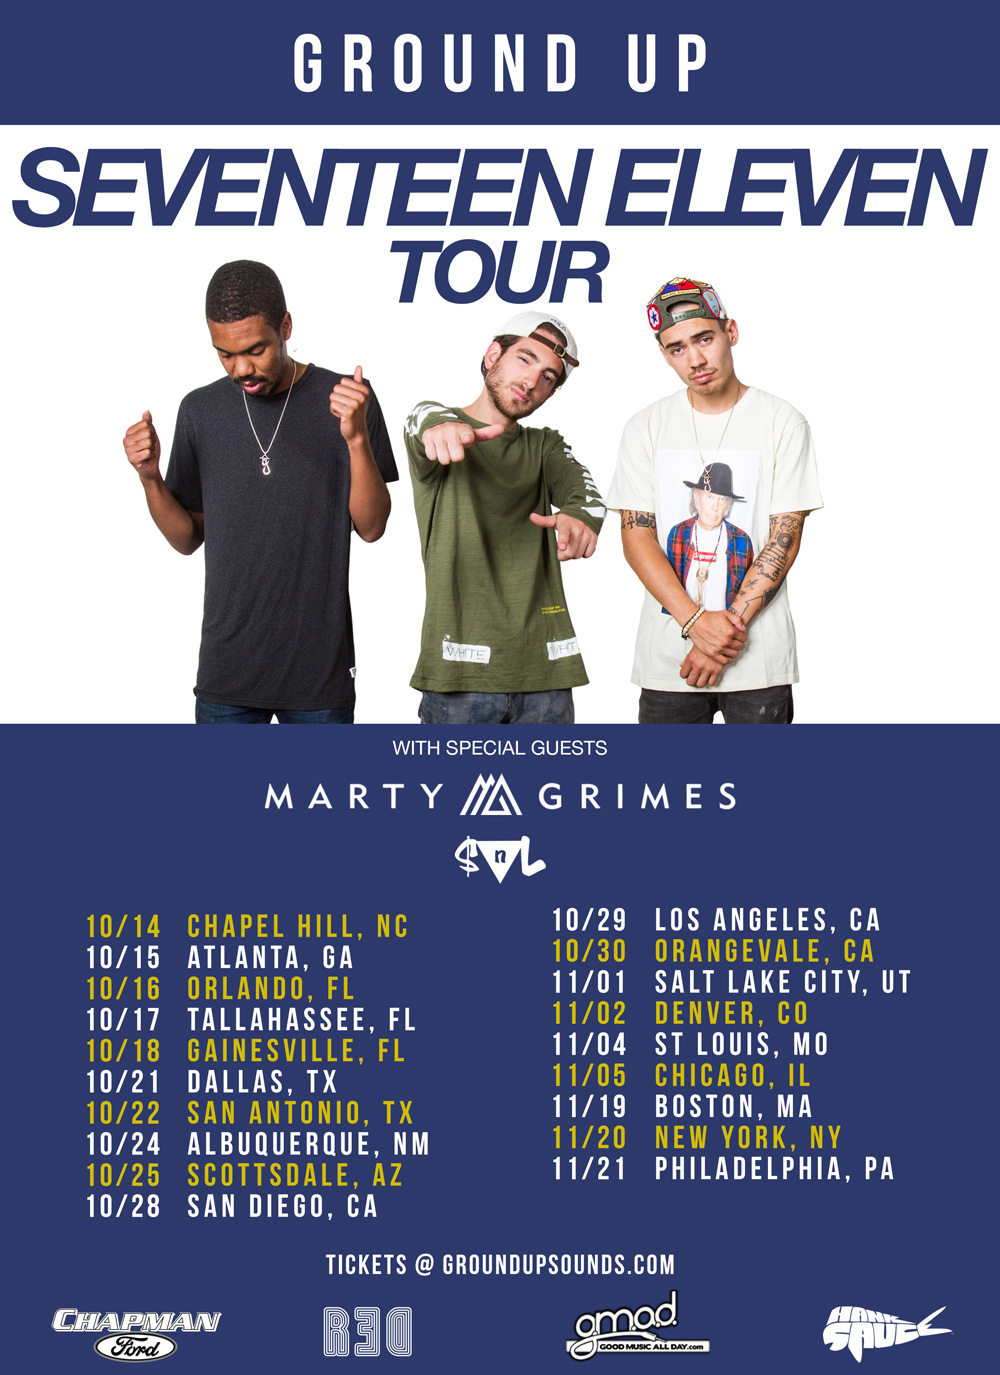 tour-flyer-official-UPDATED-copy